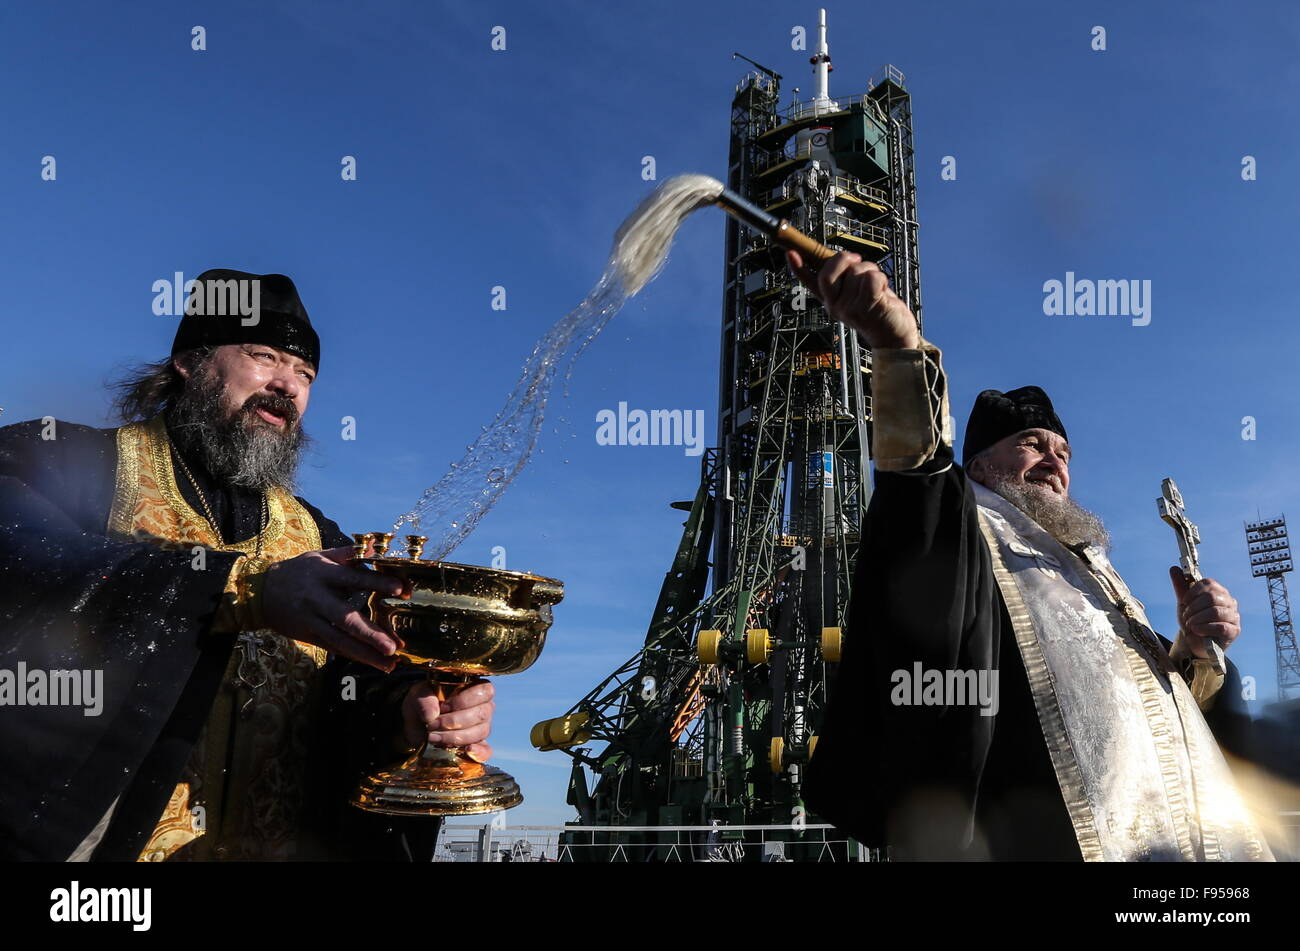 Baikonur, Kazakhstan. 14th Dec, 2015. An Orthodox priest sprays holy water on the Soyuz TMA-19M spacecraft at the - Stock Image